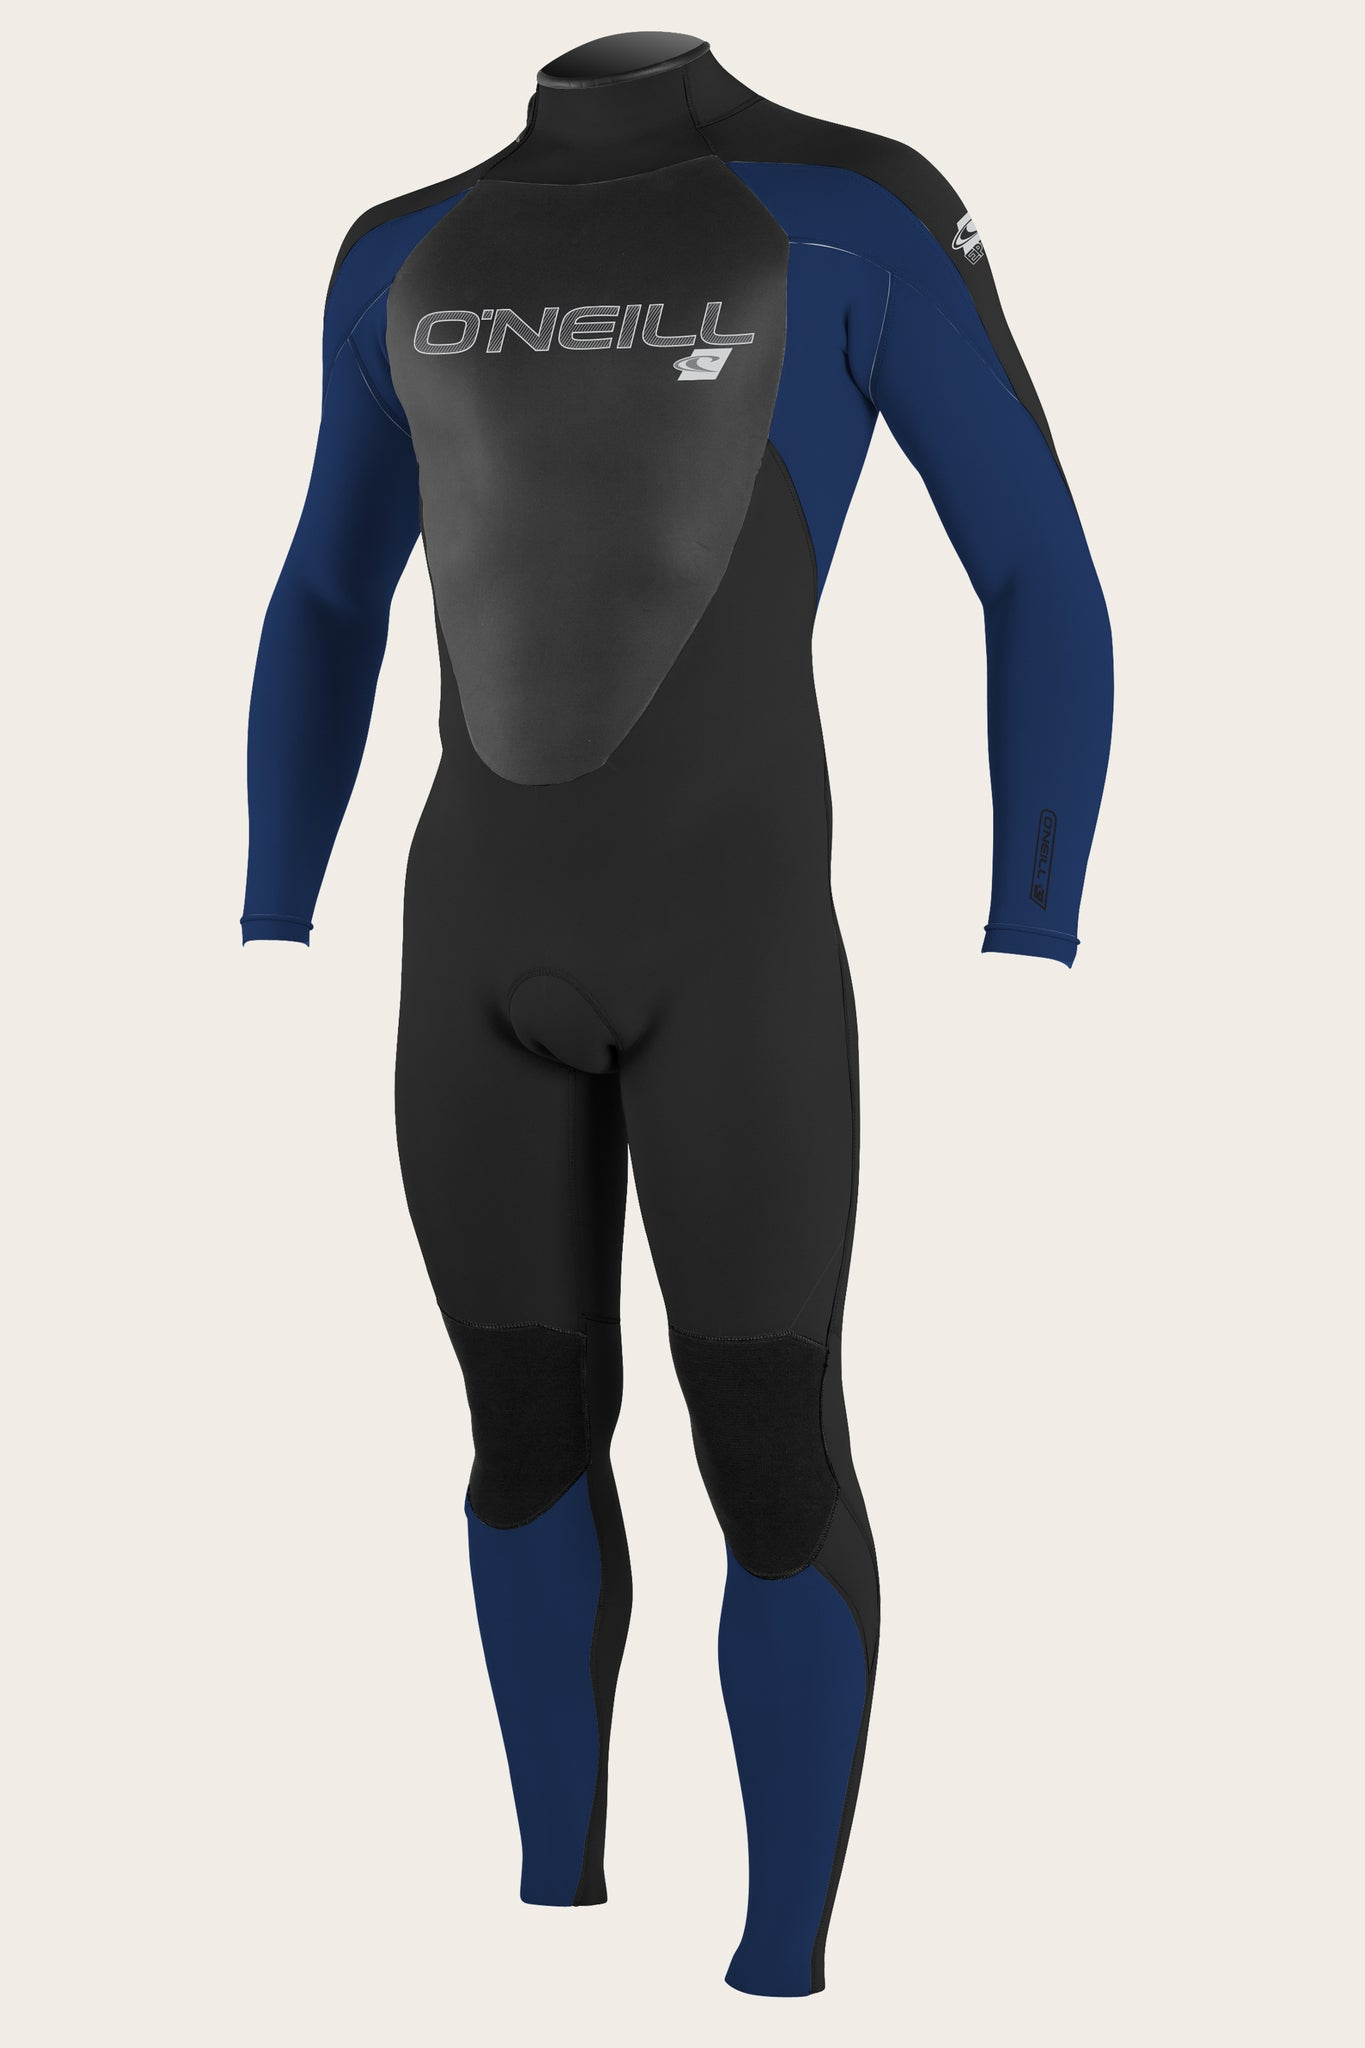 Epic 3/2Mm Back Zip Full Wetsuit - Blk/Navy/Blk | O'Neill